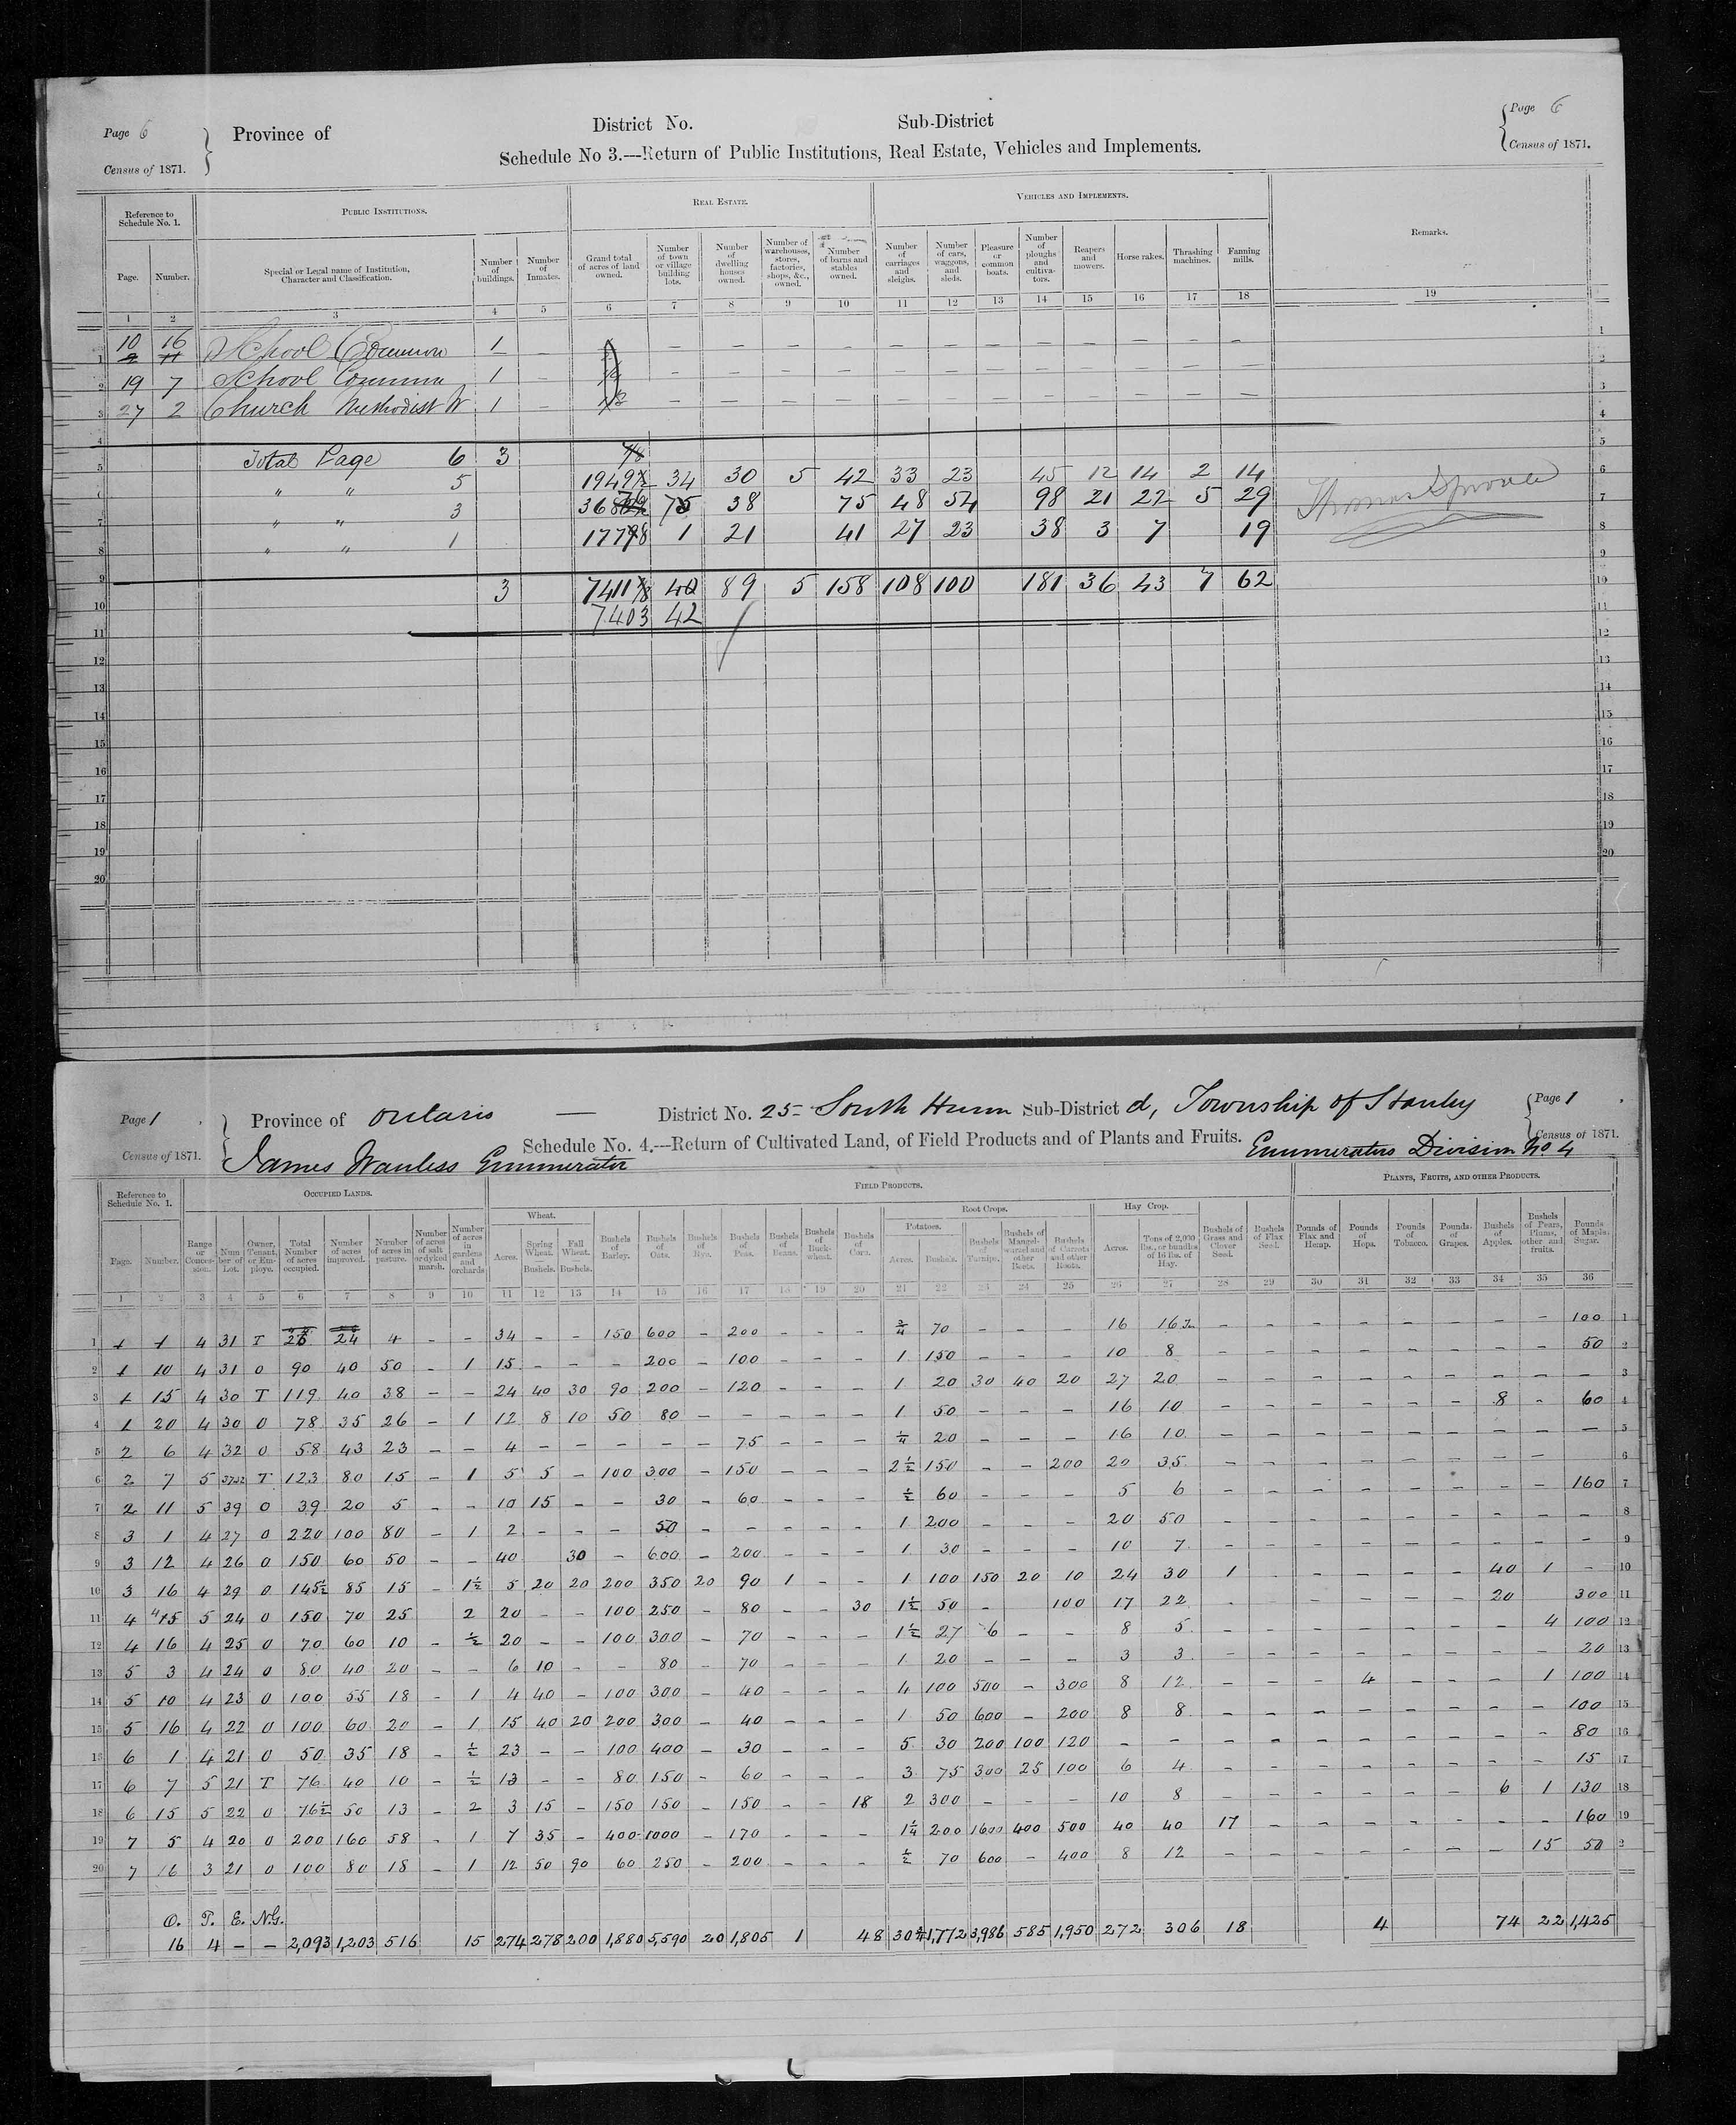 Title: Census of Canada, 1871 - Mikan Number: 142105 - Microform: c-9929